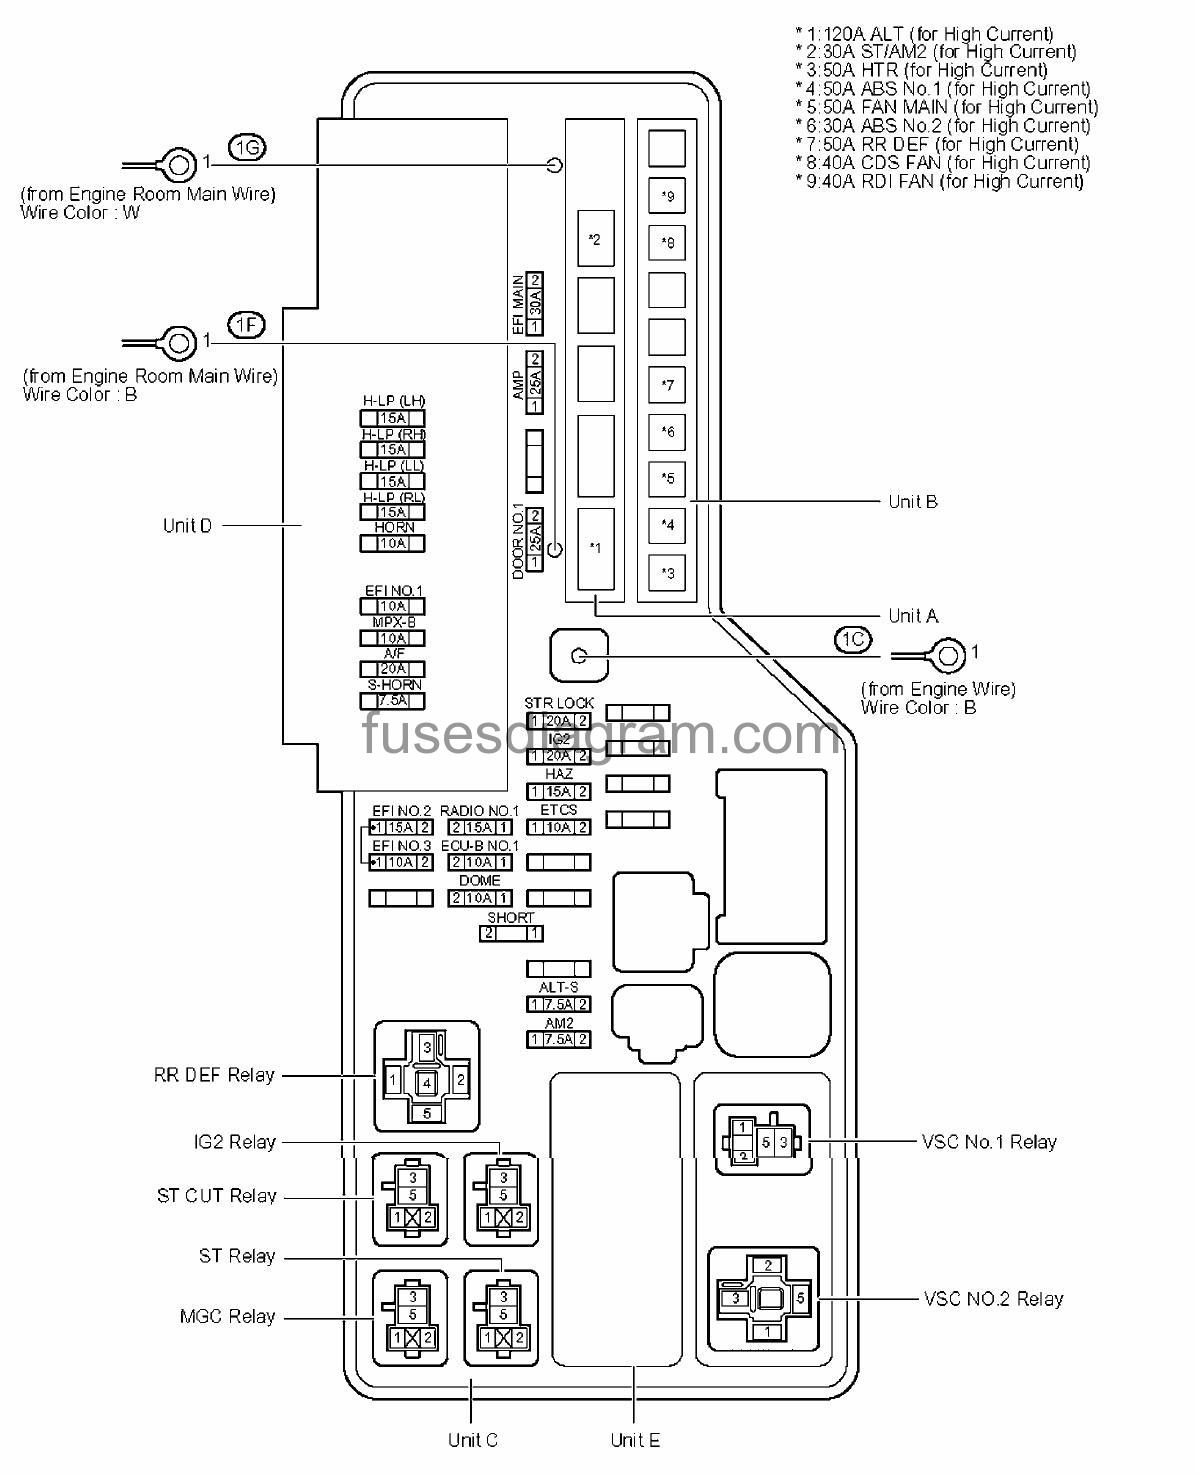 toyota innova wiring diagram motorhome battery isolator pdf 2019 ebook library fuse box blogs